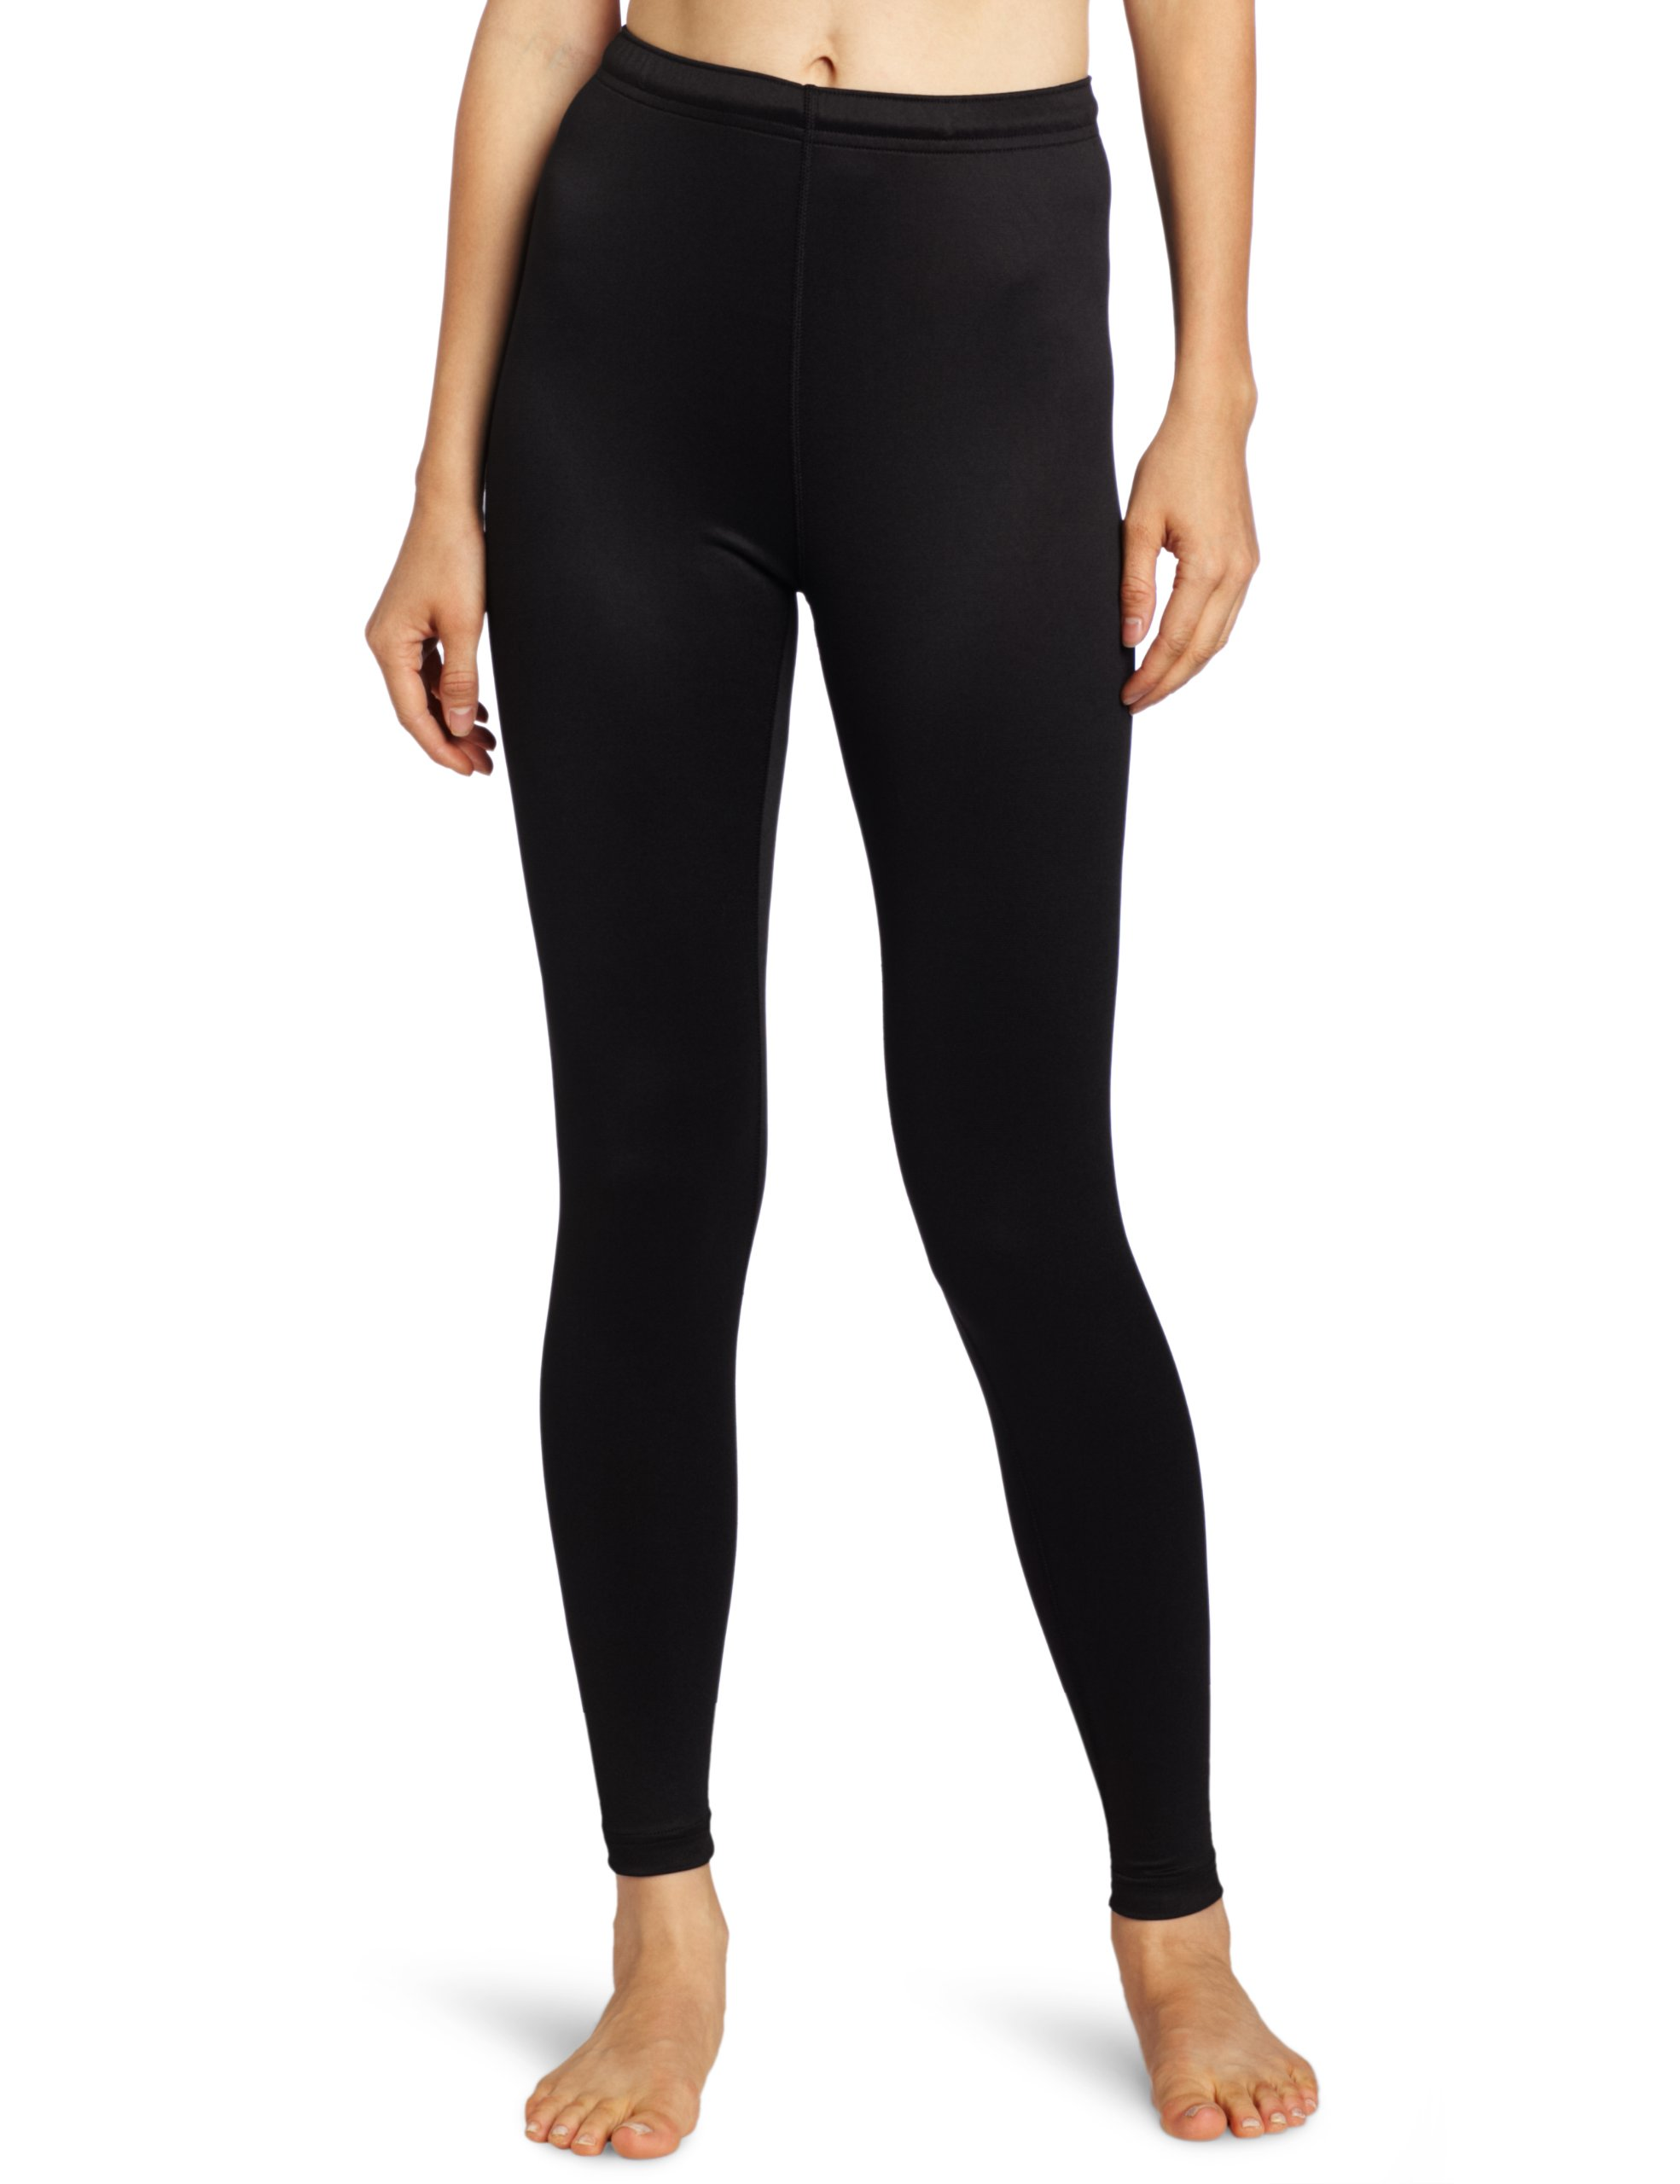 Duofold Women's Mid Weight Varitherm Thermal Leggings, Black, X Large